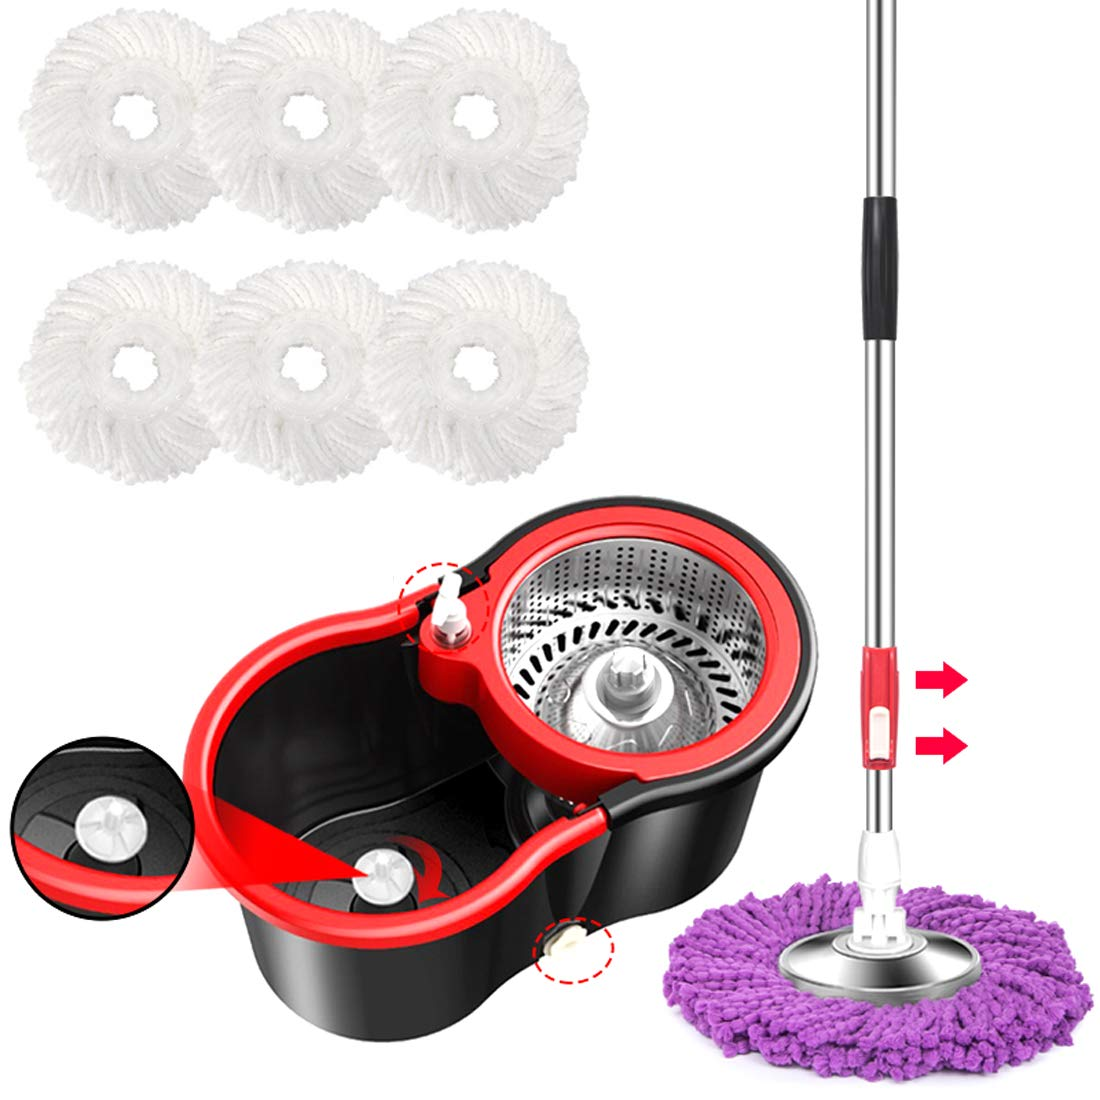 YFLY Bucket System Deluxe Stainless Steel Spinning Mop with 61'' Silent Extended Handle, 2X Wheels, 6 Microfiber Replacement Head, Drain Outlet, Detergent Dispenser, for Home by YFLY (Image #3)